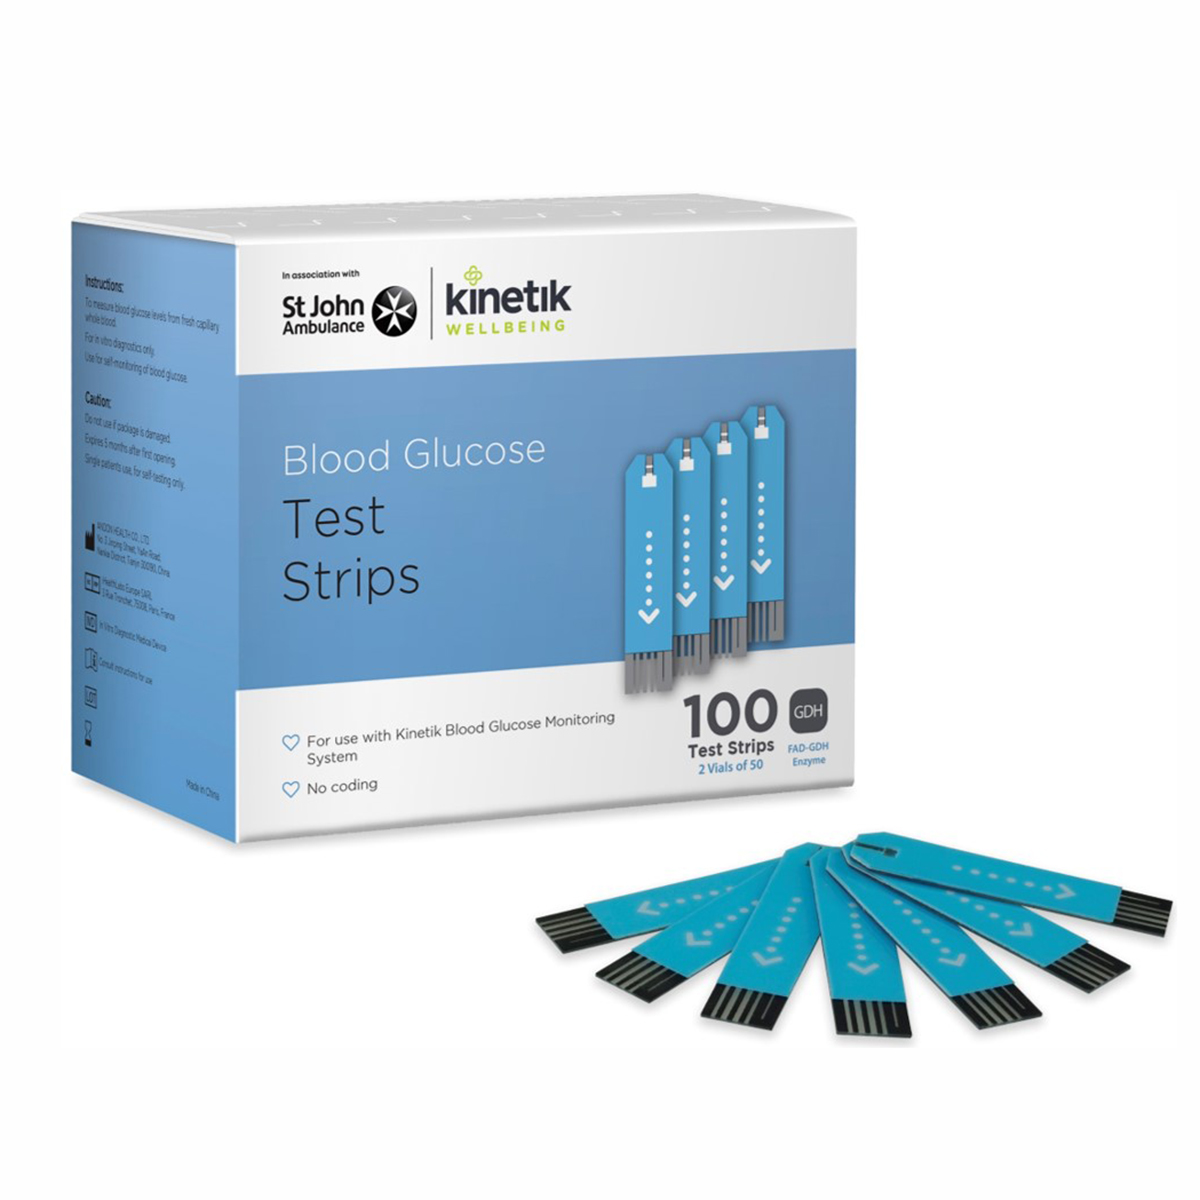 Pack of 100 Kinetic Wellbeing Blood Glucose Test Strips